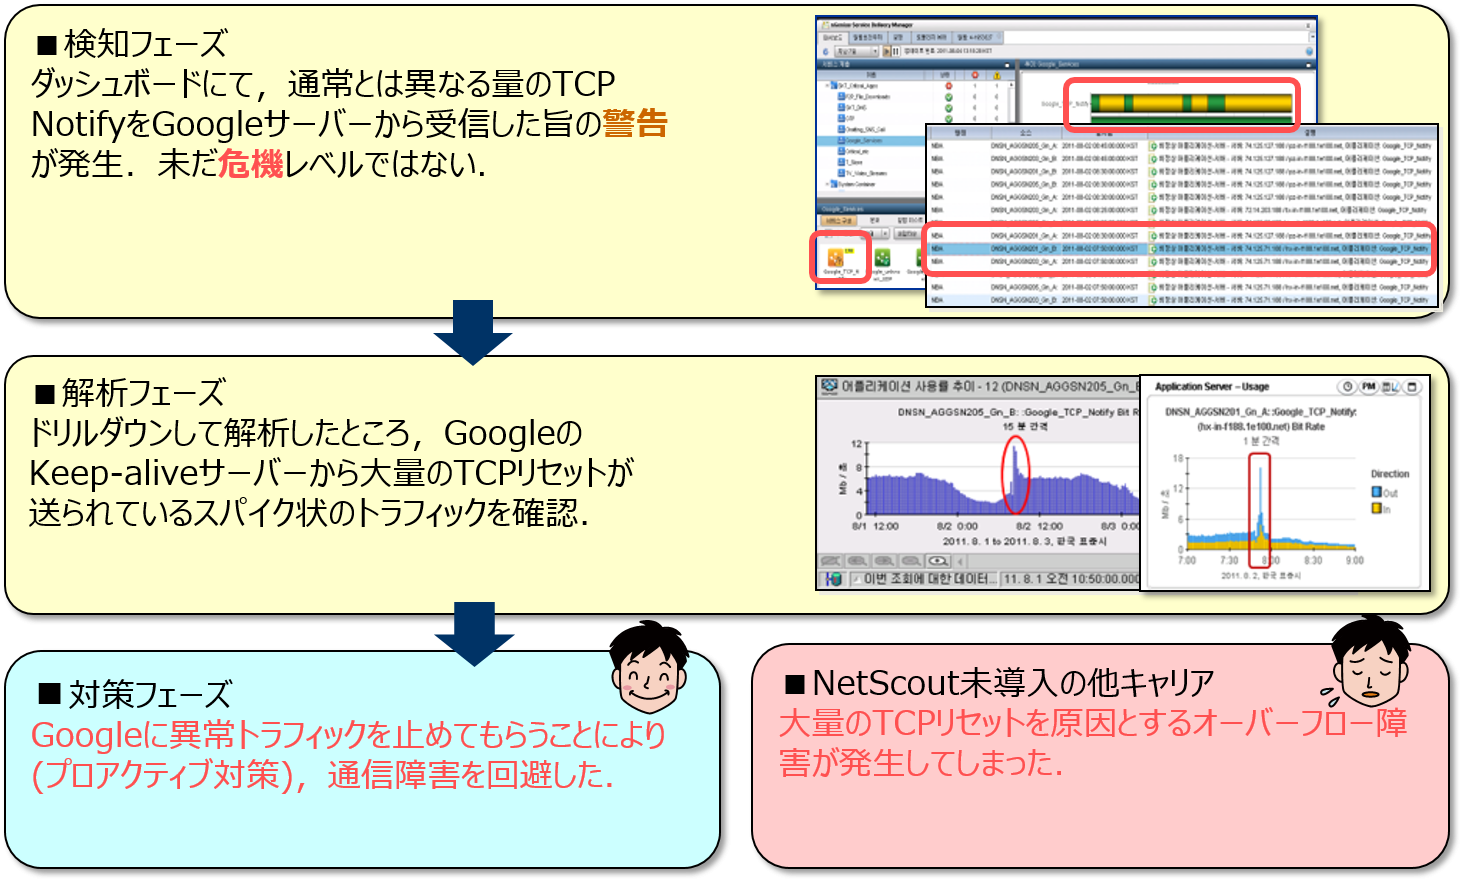 https://www.ntt-at.co.jp/product/images/170815_NetScout-nGenius_03.png